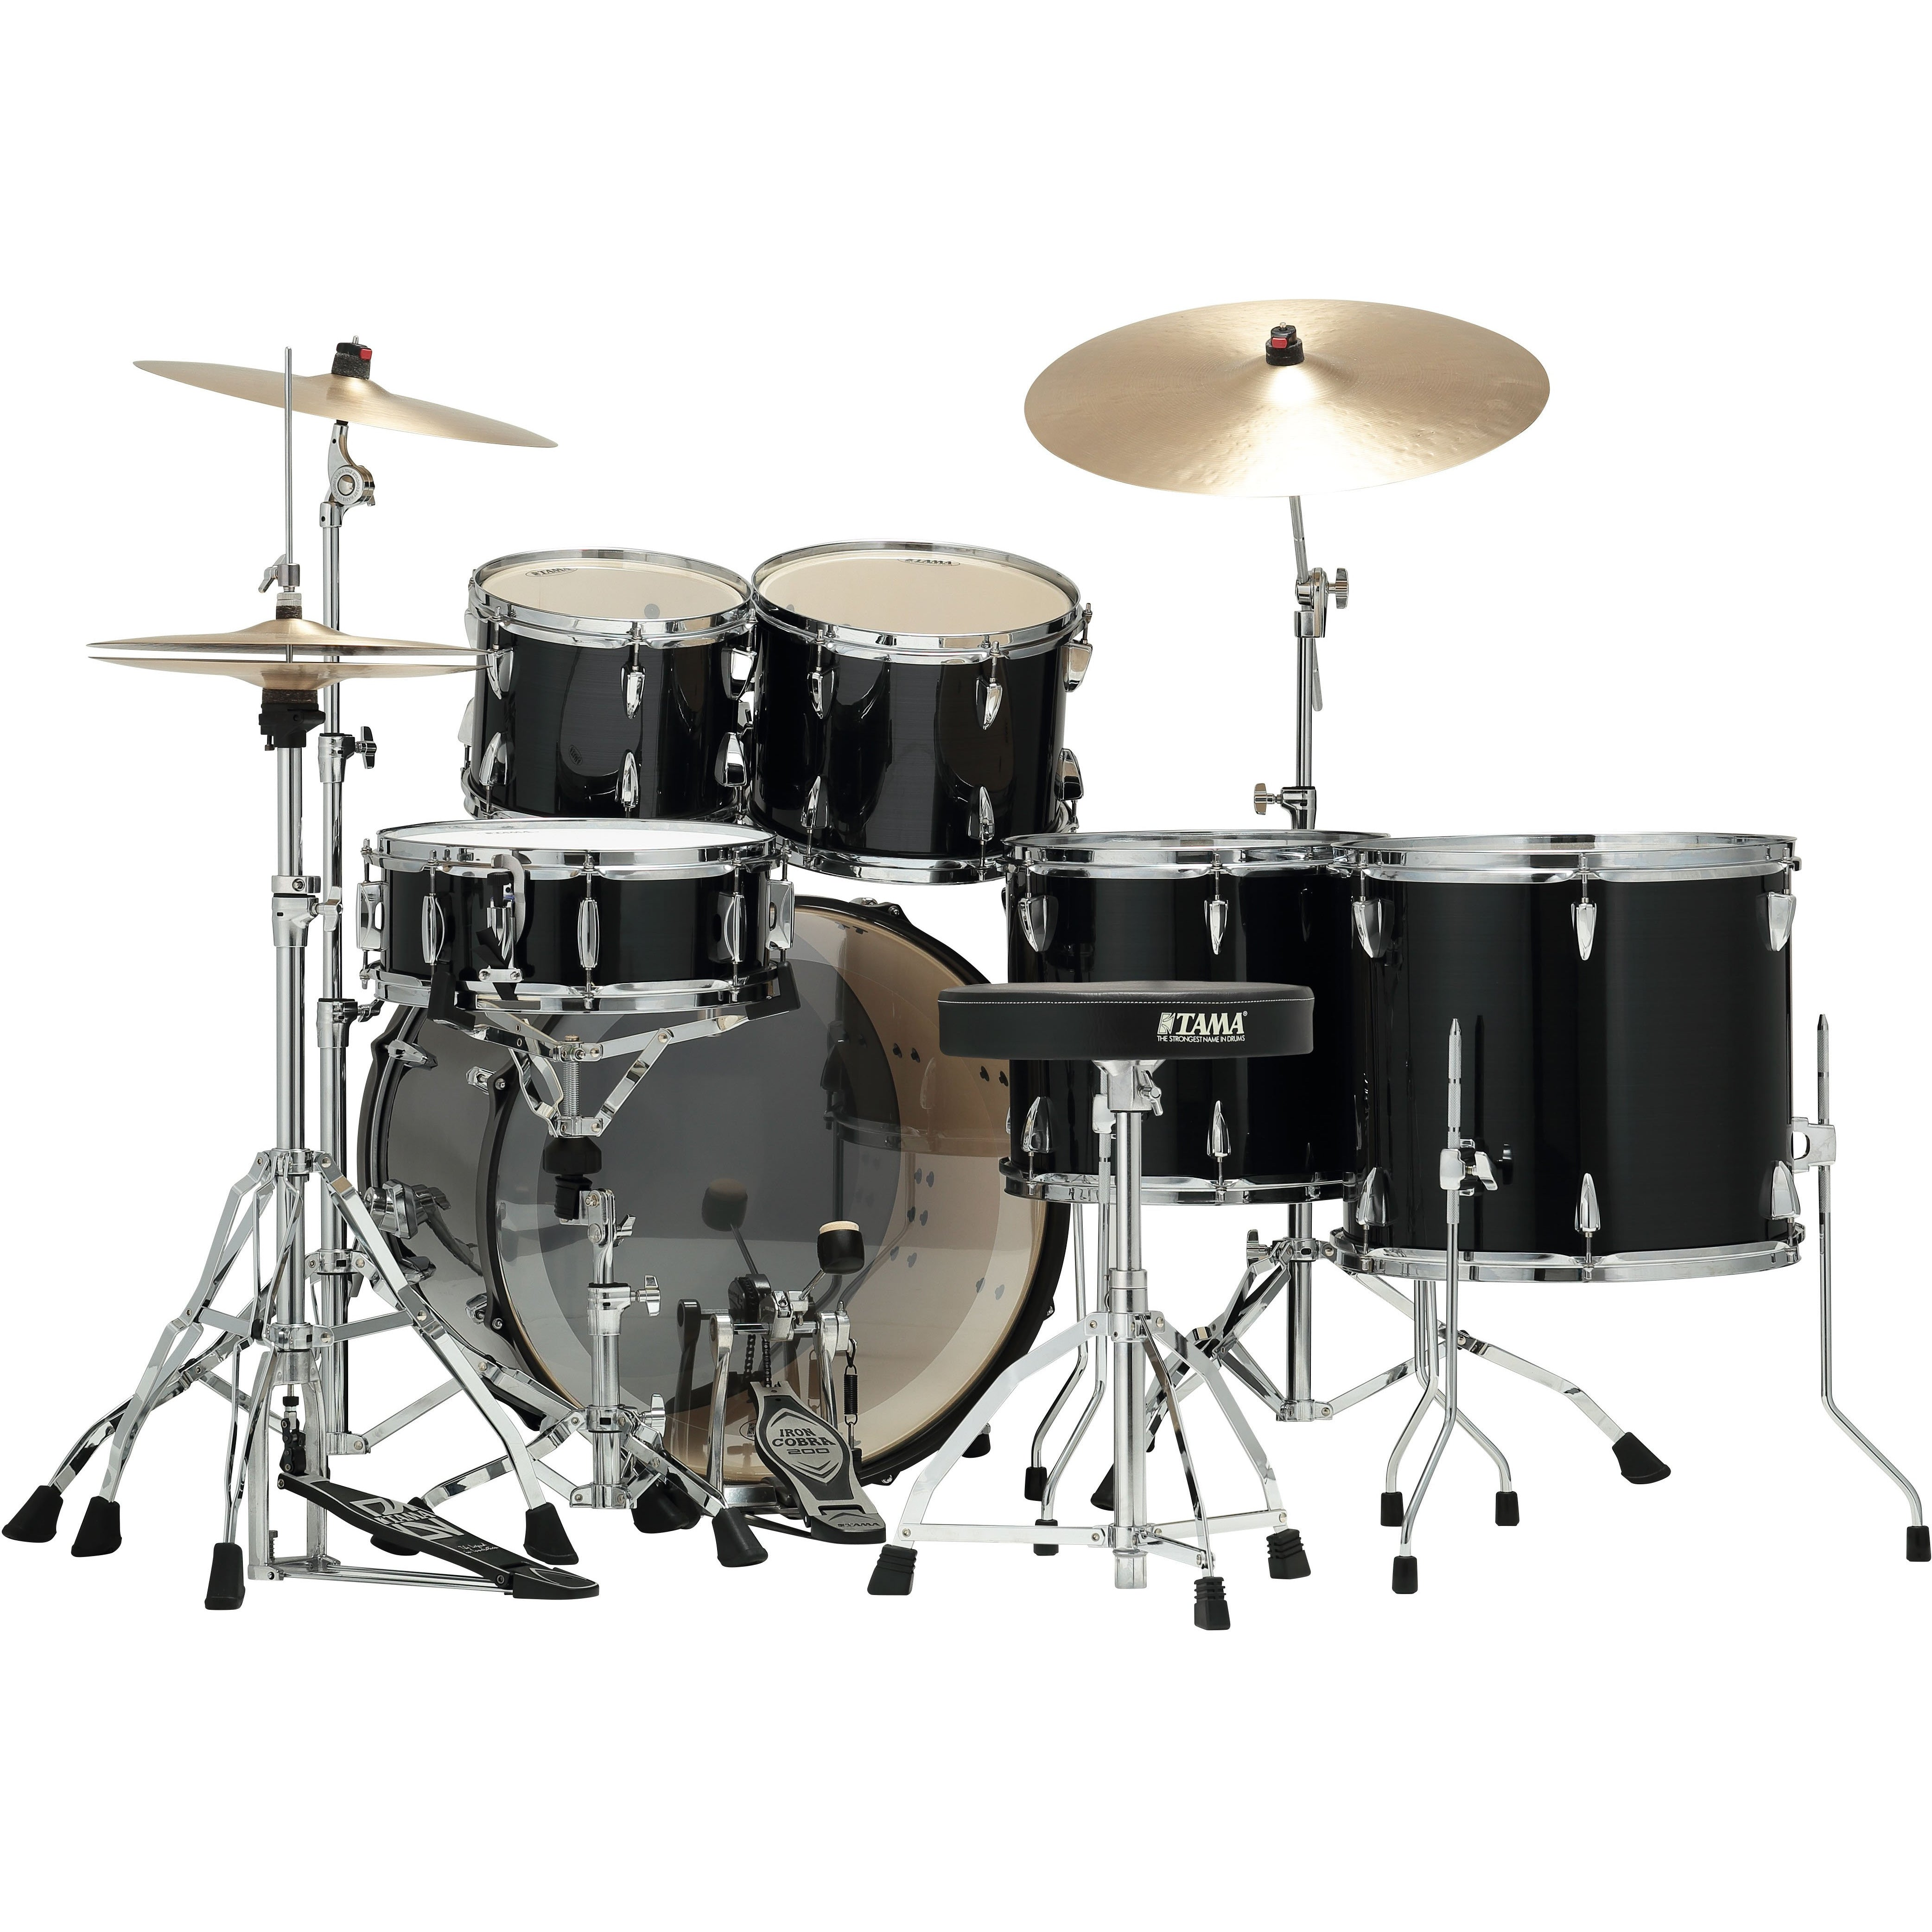 Tama Imperialstar  Drum Kit Hairline Black w/ Chrome Hardware